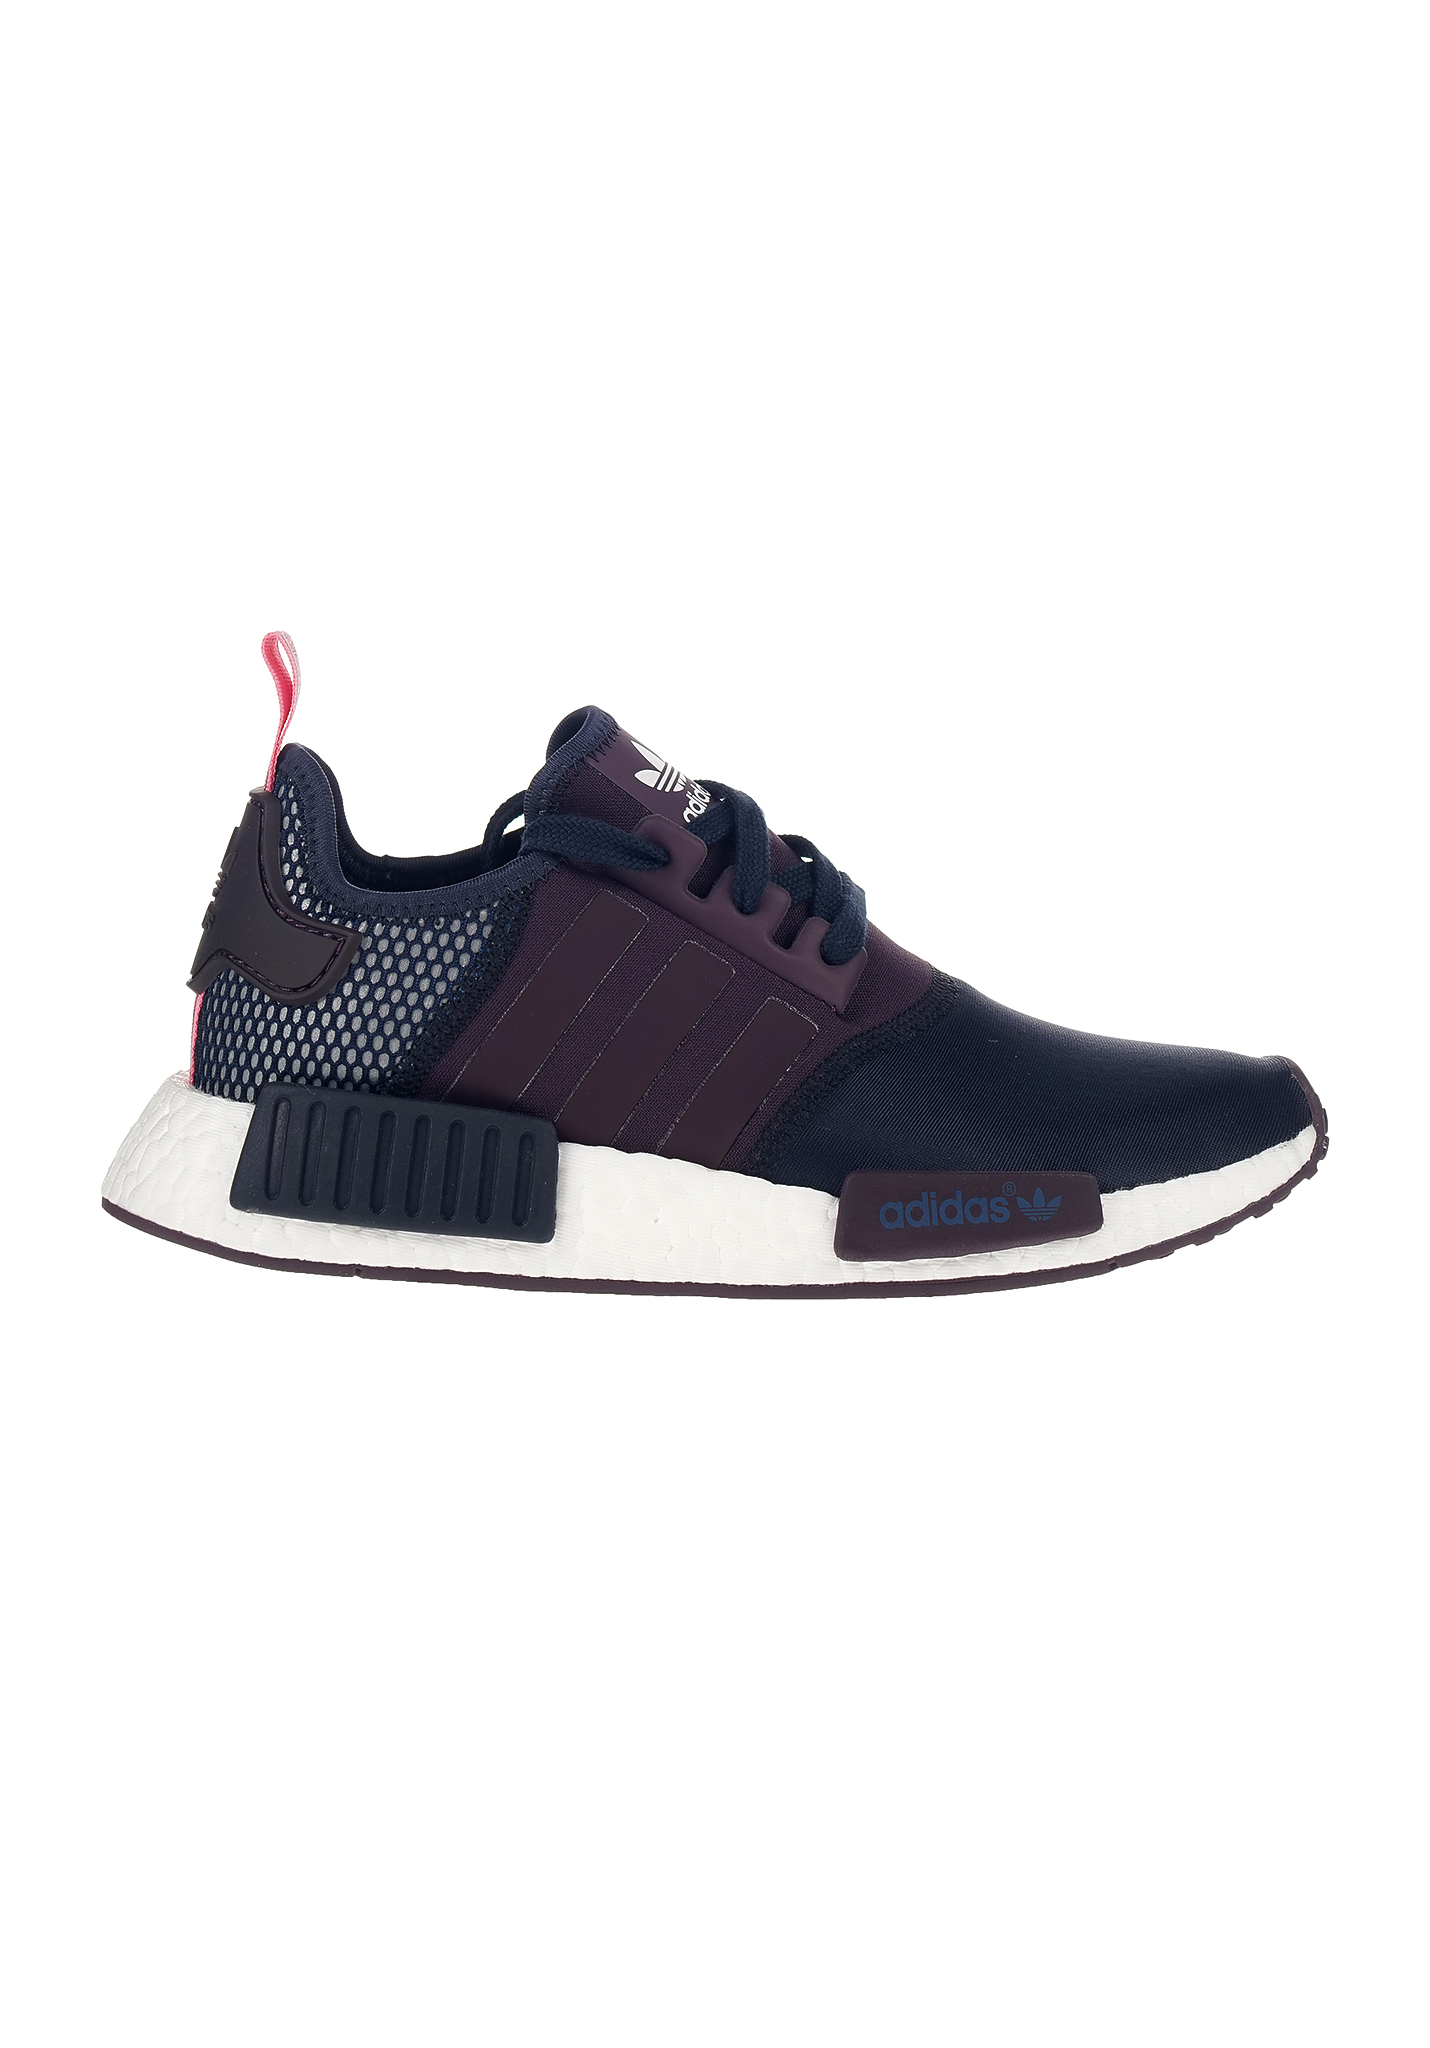 adidas nmd ebay damen bellevue. Black Bedroom Furniture Sets. Home Design Ideas